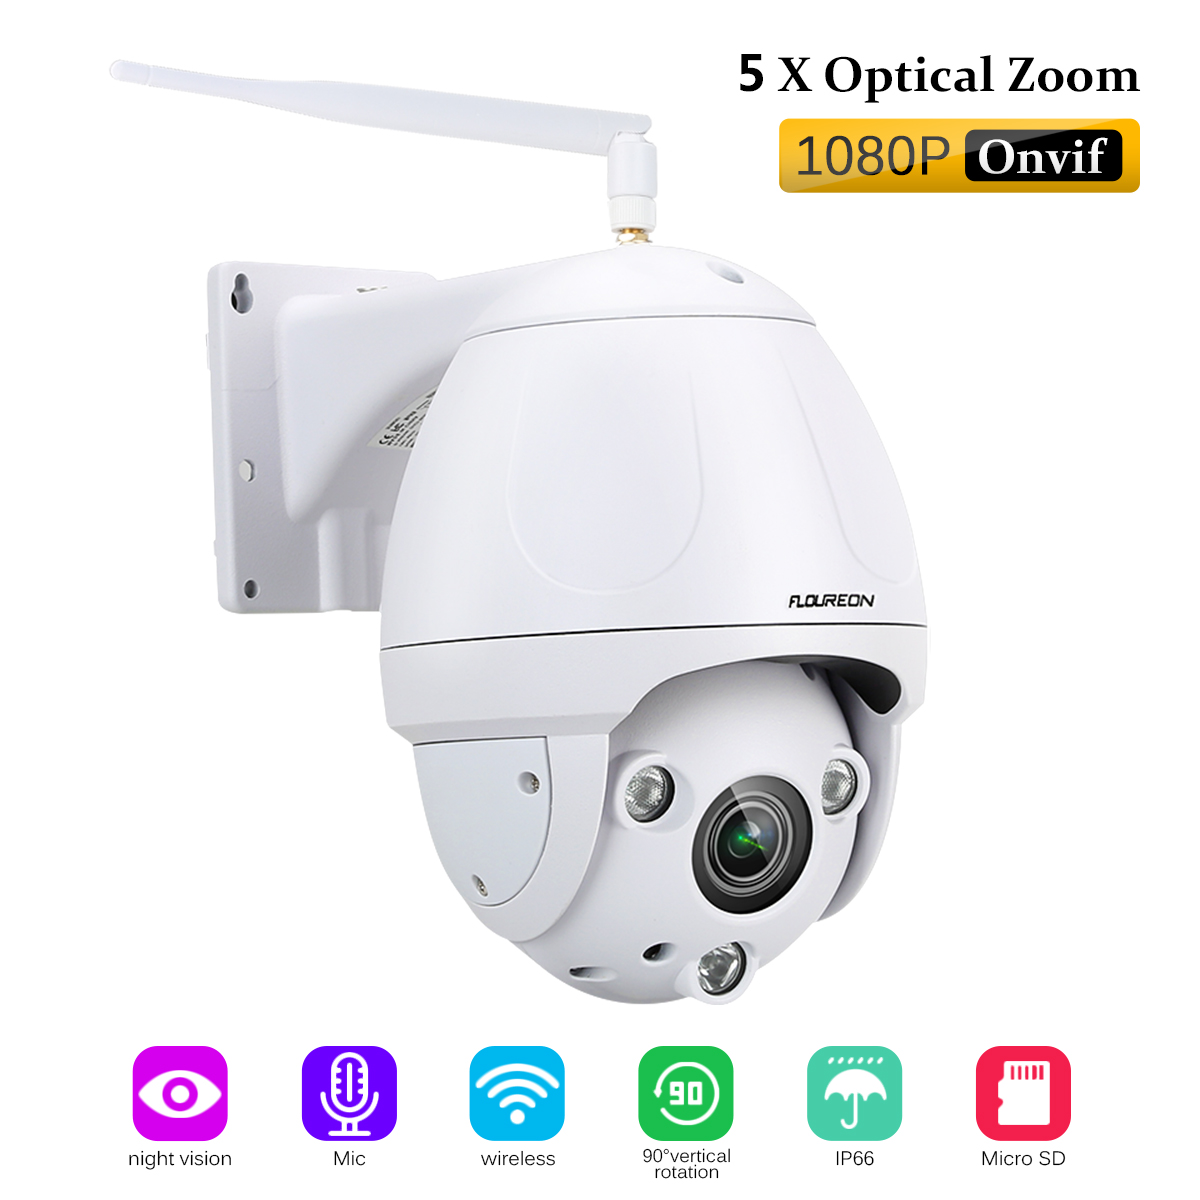 FLOUREON 1080P 2.0MP Wire-less Security Pan/Tilt PTZ 5x ZOOM Cameras Night Vision Dome Camera Auto Focus Pre-installed 128G Memory Card